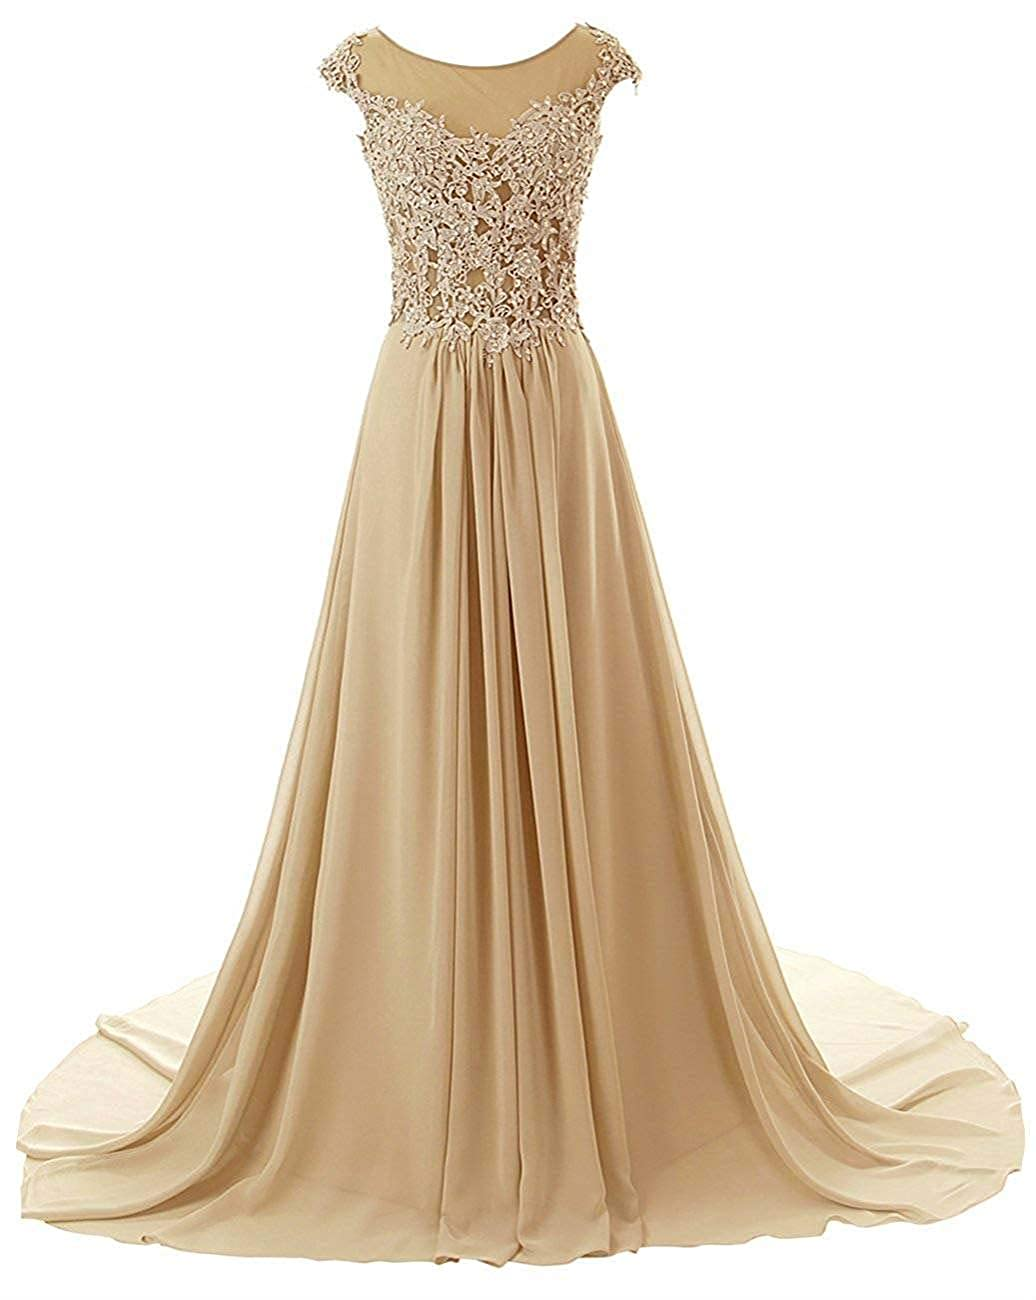 Champagne Wanshaqin Women's Aline Lace Appliques Evening Party Cocktail Dresses Bridesmaid Gowns Prom Formal Dresses for Events Party